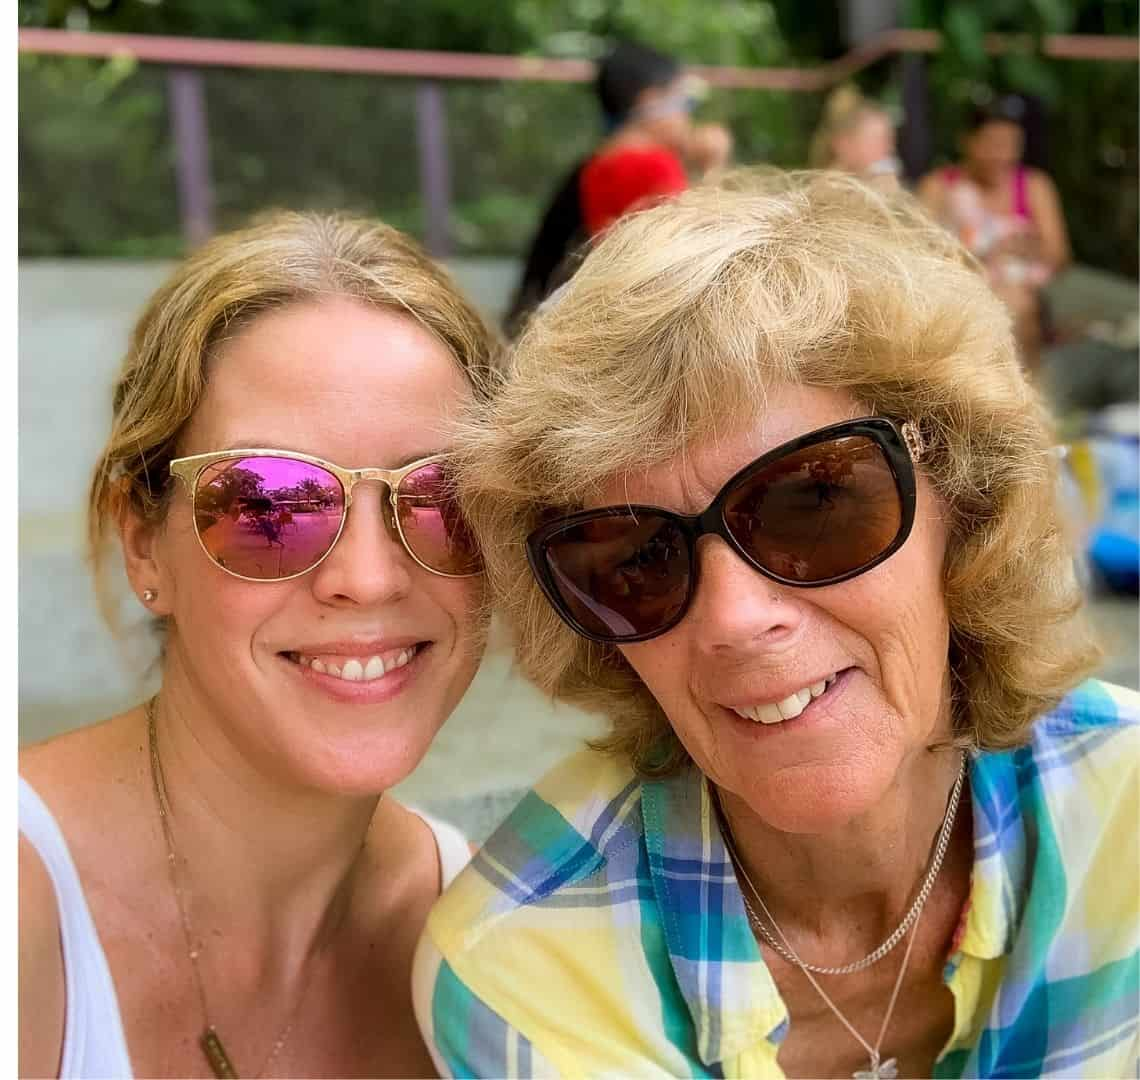 Me and Granny Wanderlust selfie in Singapore, We are both wearing sunglasses, My hair is tied back as usual. She is wearing a yellow and blue checked shirt and I am wearing a white tank top.